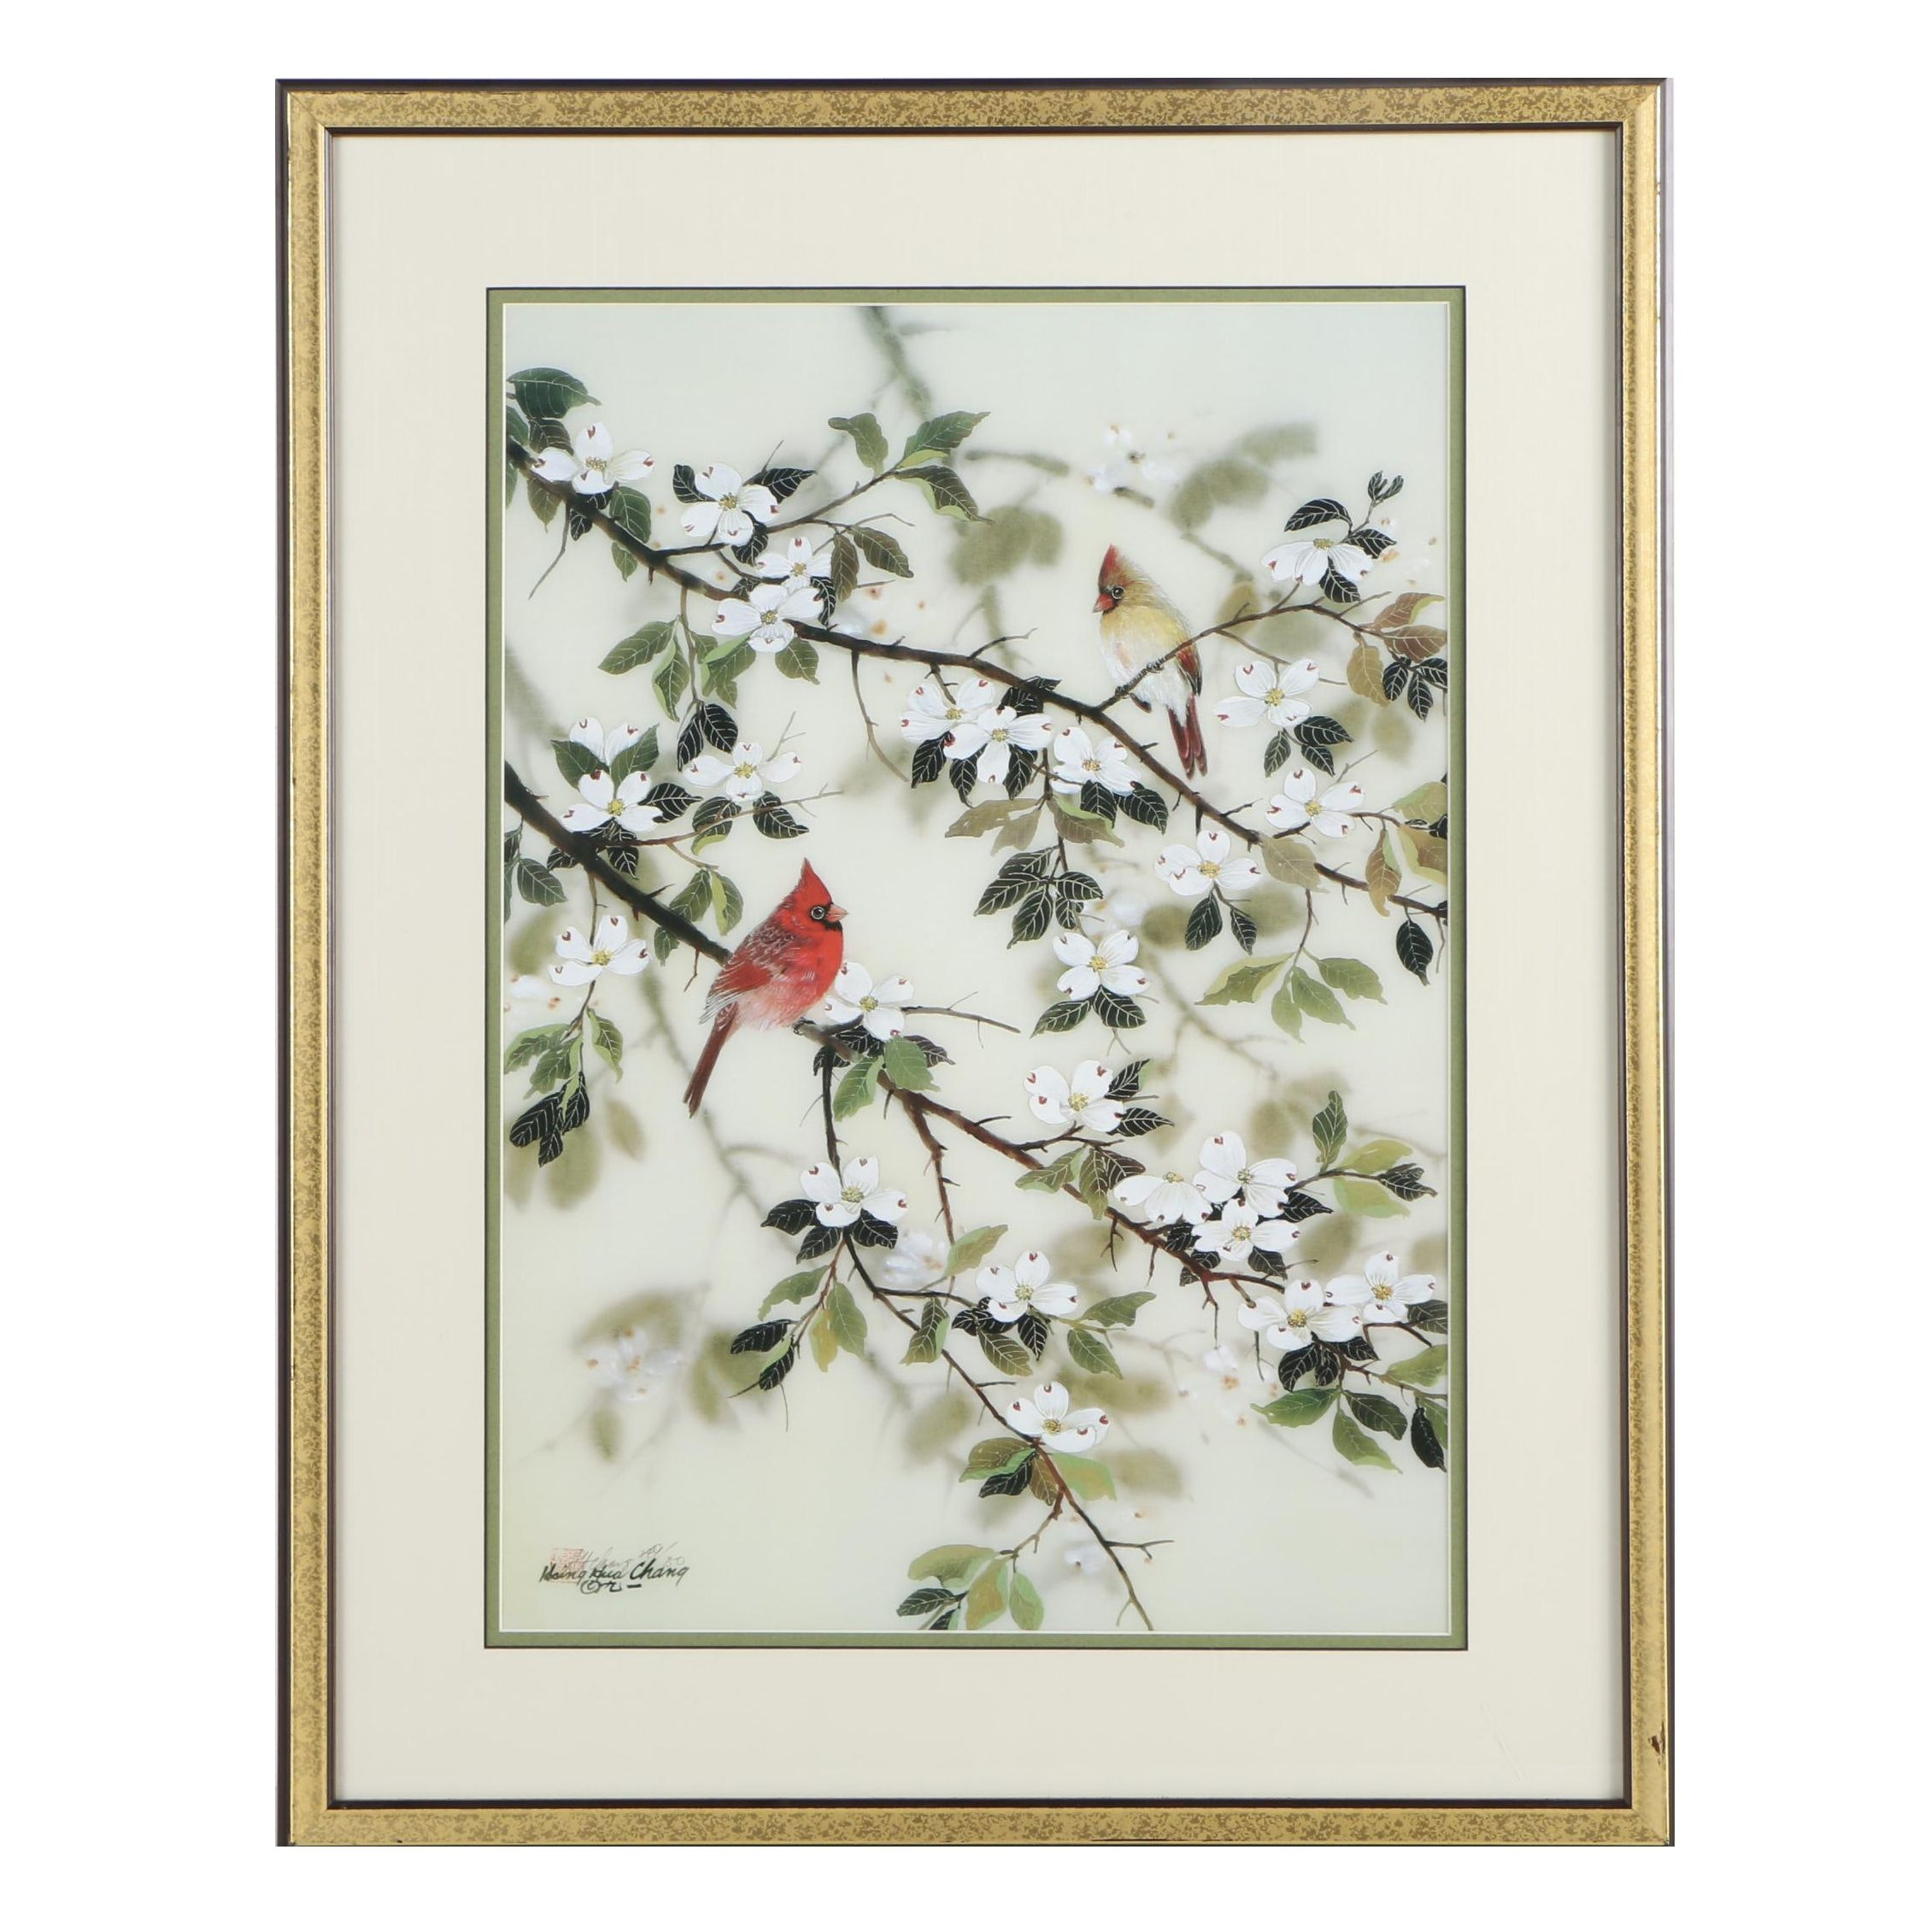 Hsing-Hua Chang Signed Limited Edition Offset Lithograph of Cardinals